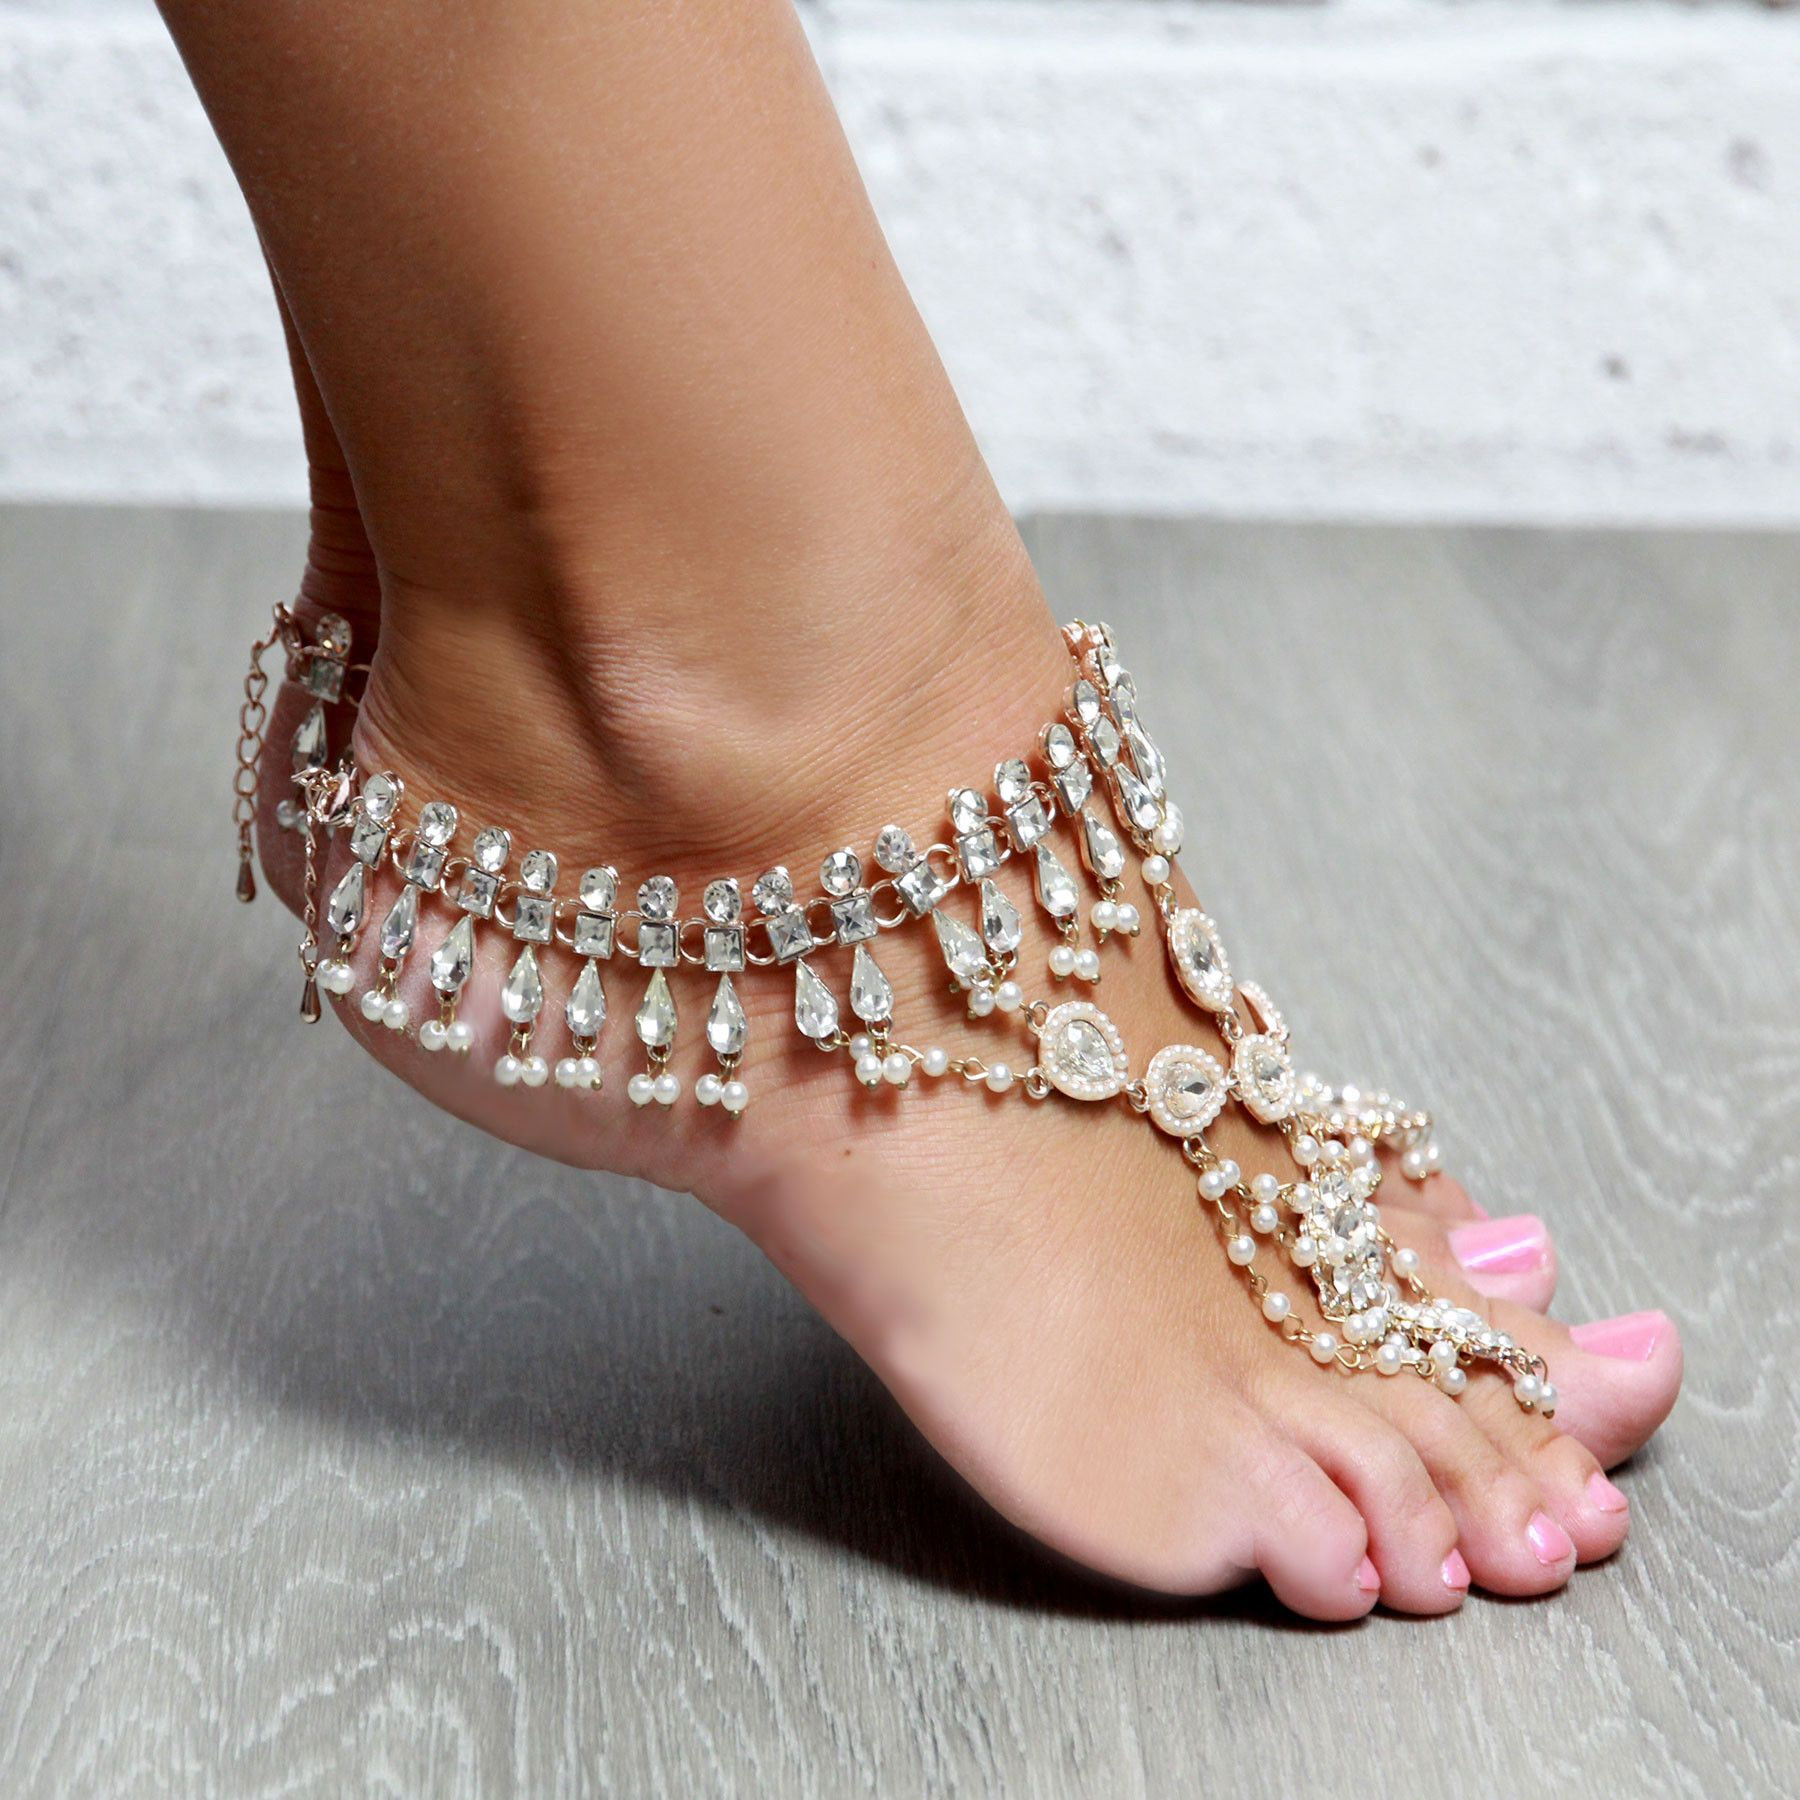 bracelets youtube watch anklet leather anklets diywithpri late diy ankle summer